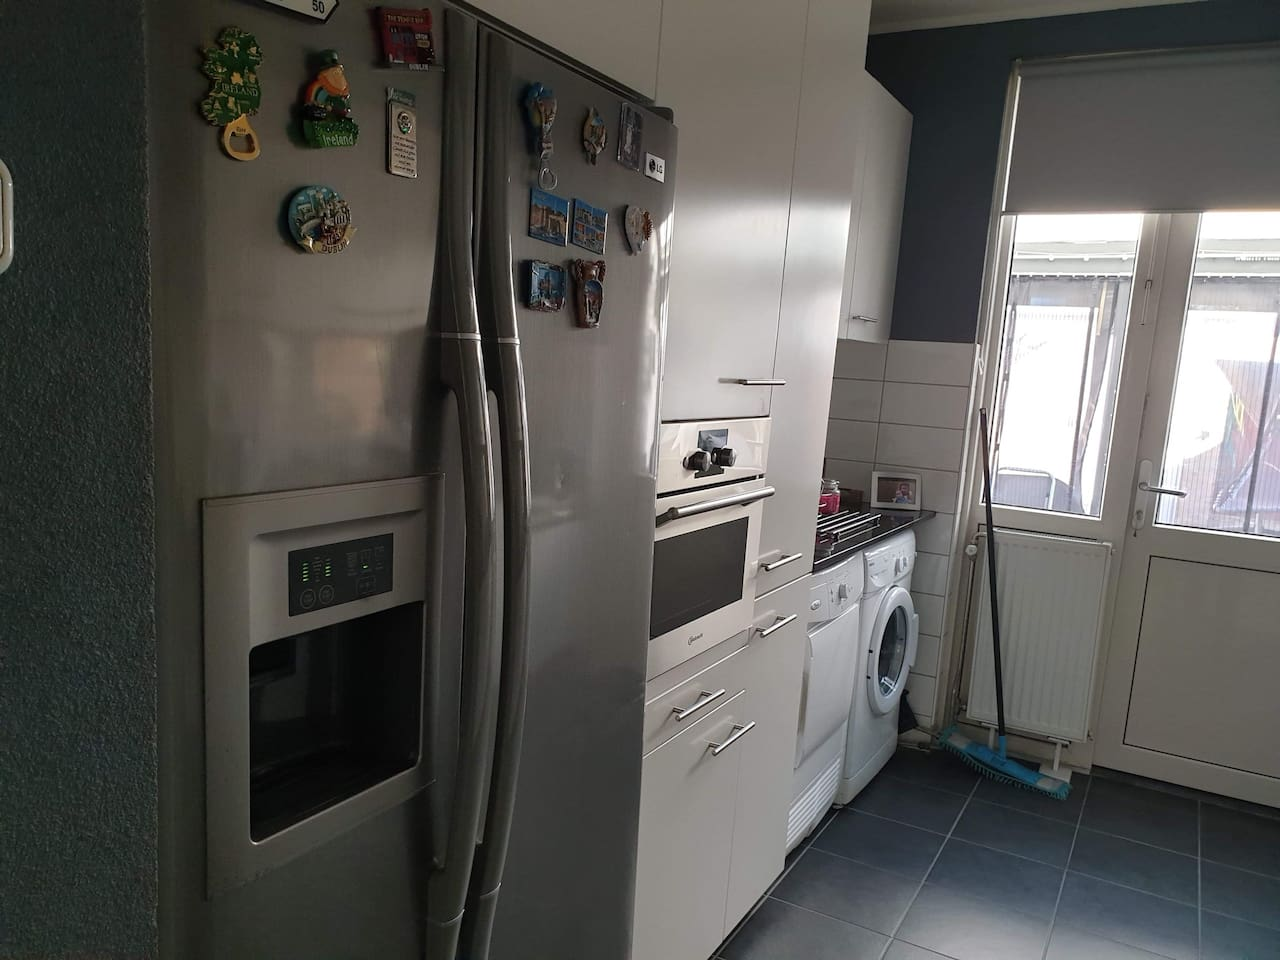 The kitchen can be used to cook meals.